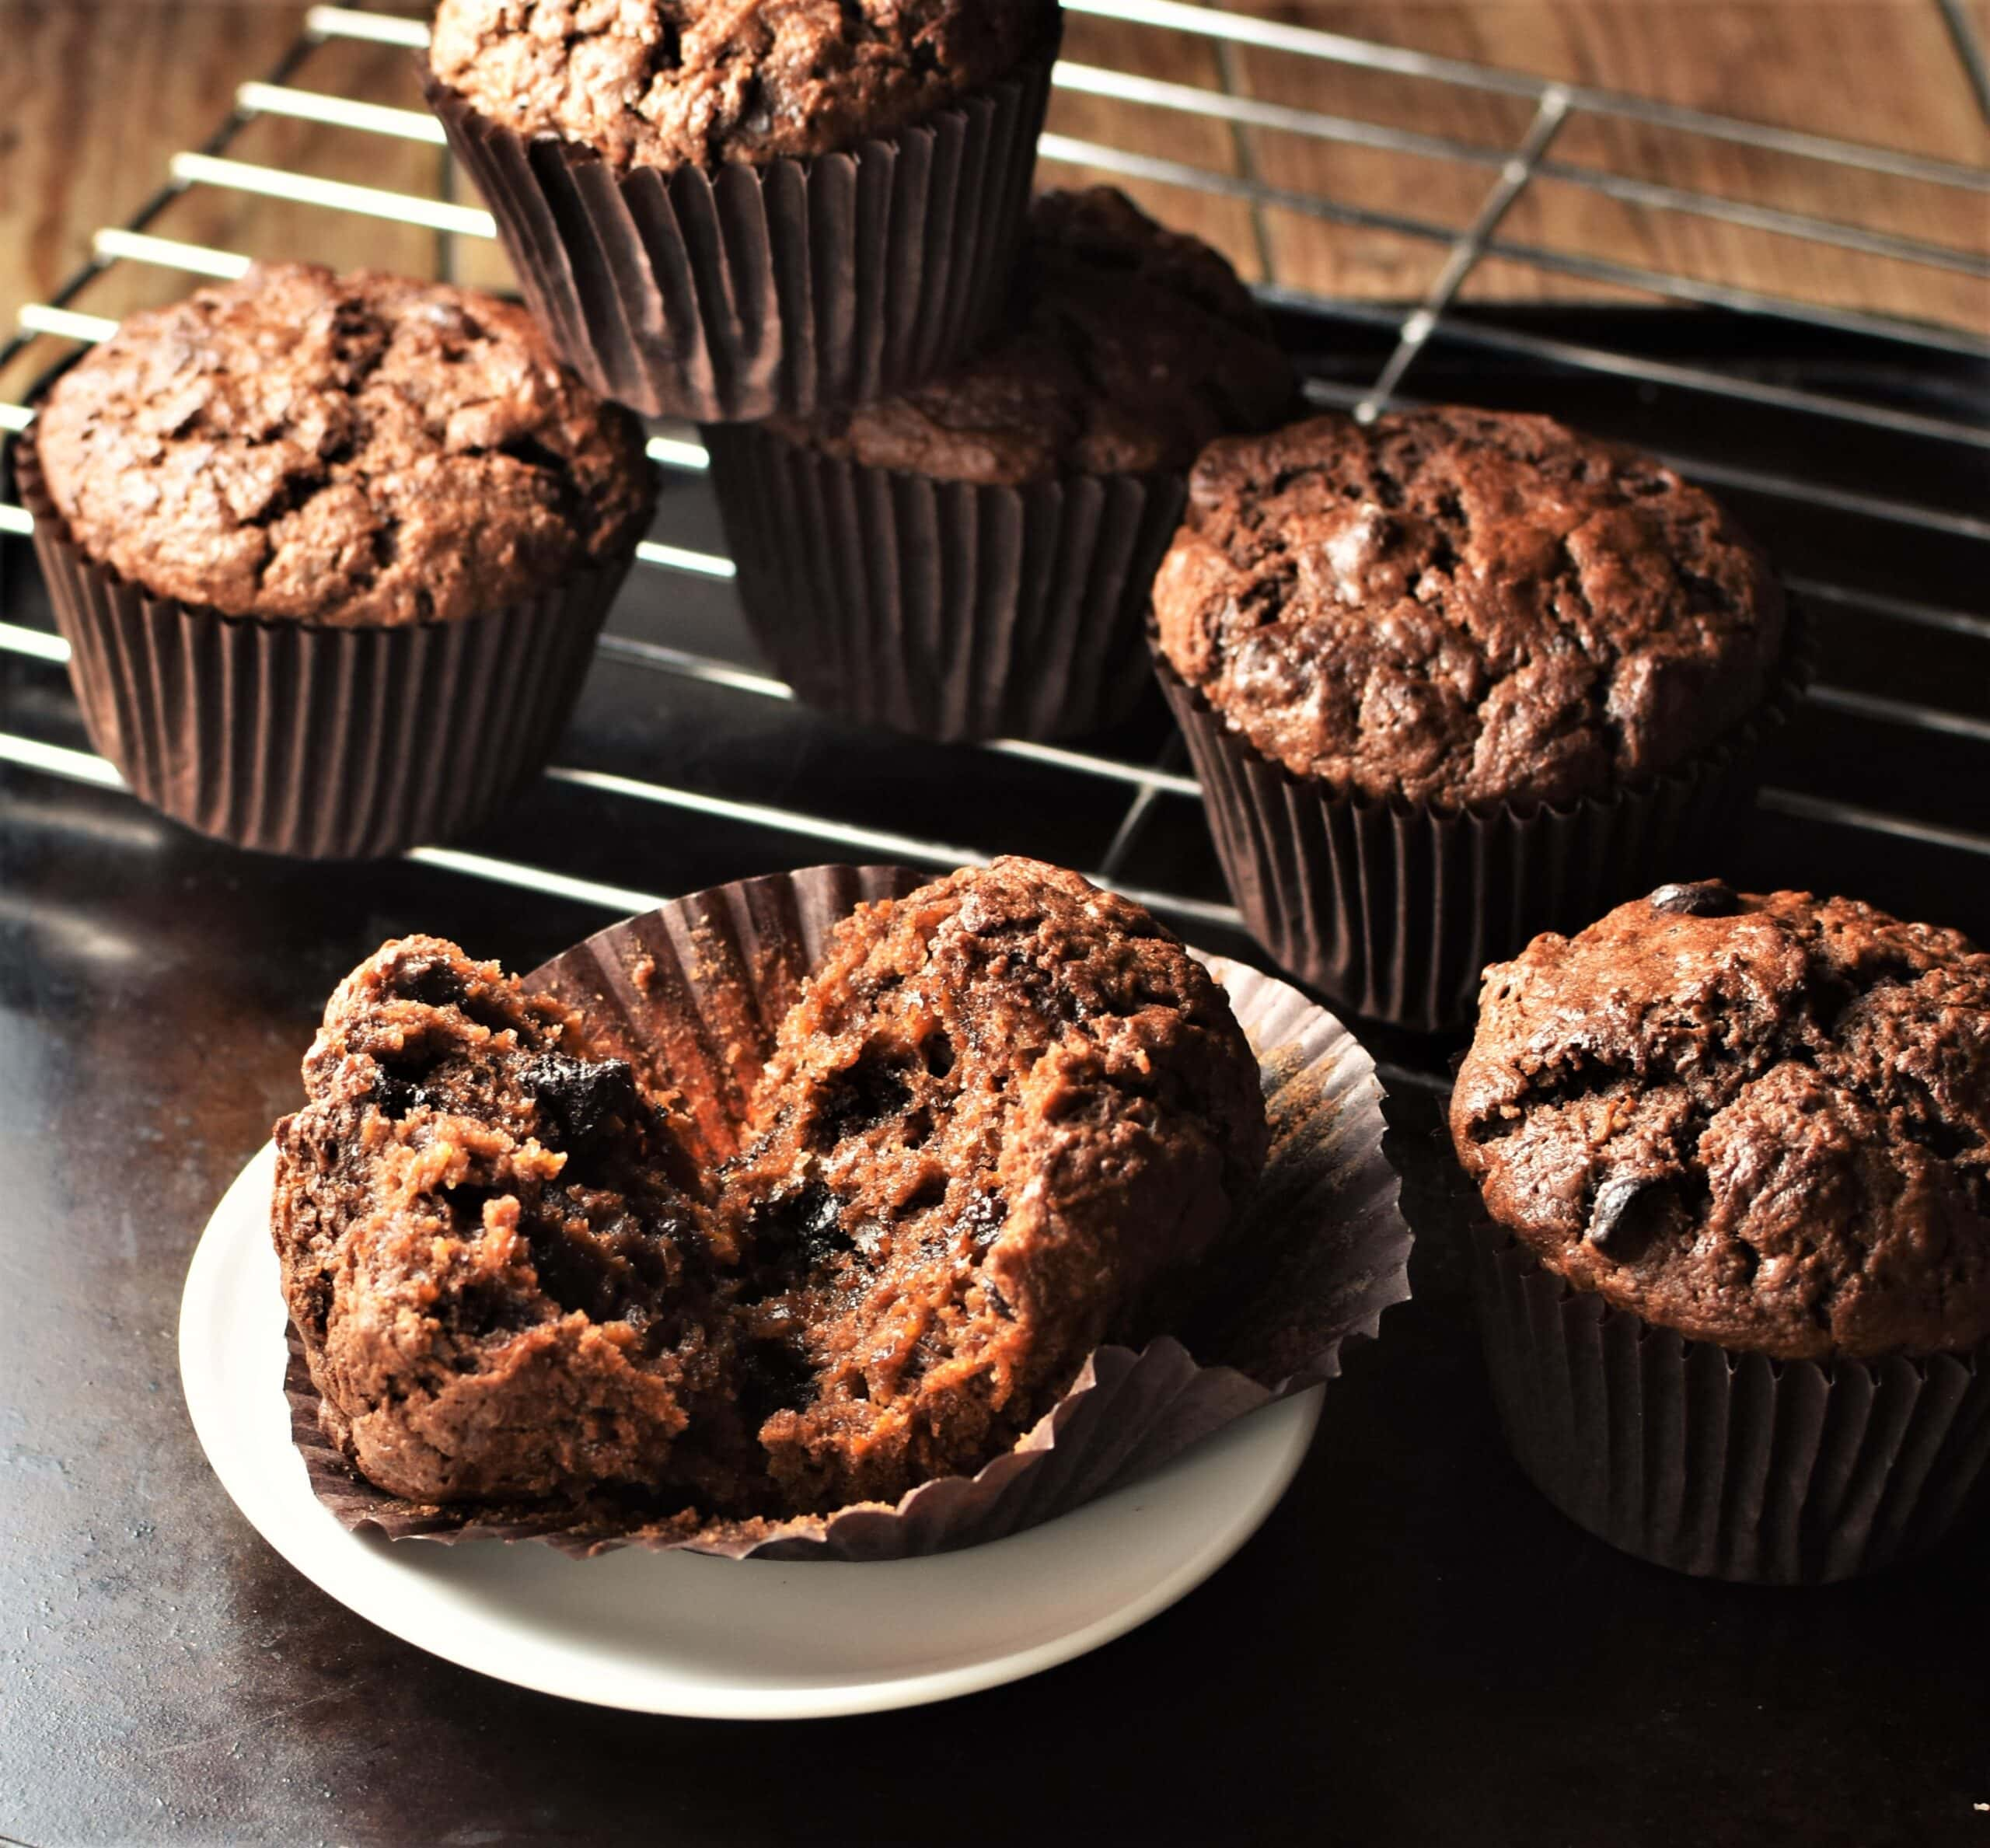 Side view of sweet potato chocolate muffins on white saucer and rack.